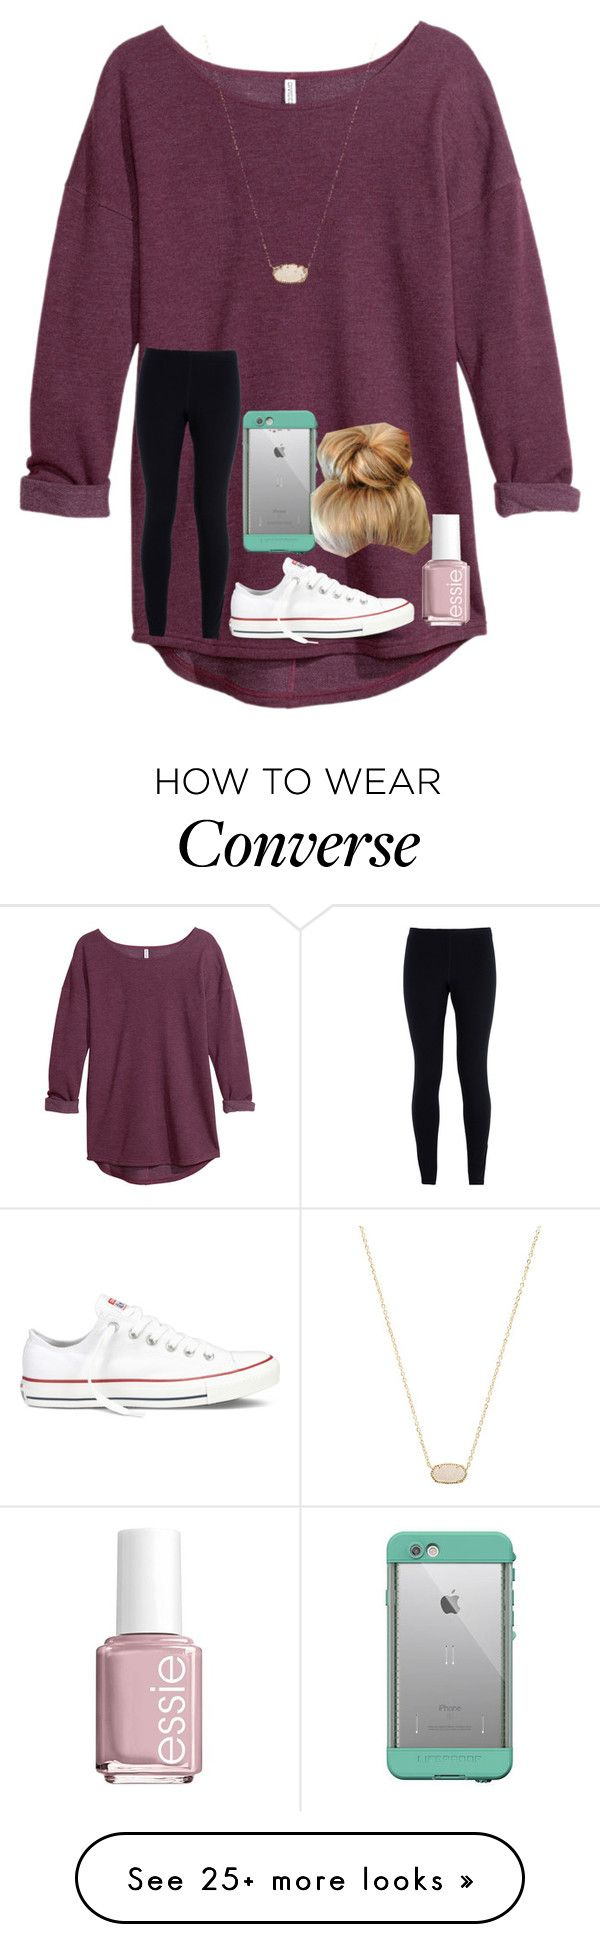 """Everyone RTD please!!"" by shenry2016 on Polyvore featuring H&M, NIKE, Converse, Kendra Scott, LifeProof and Essie"